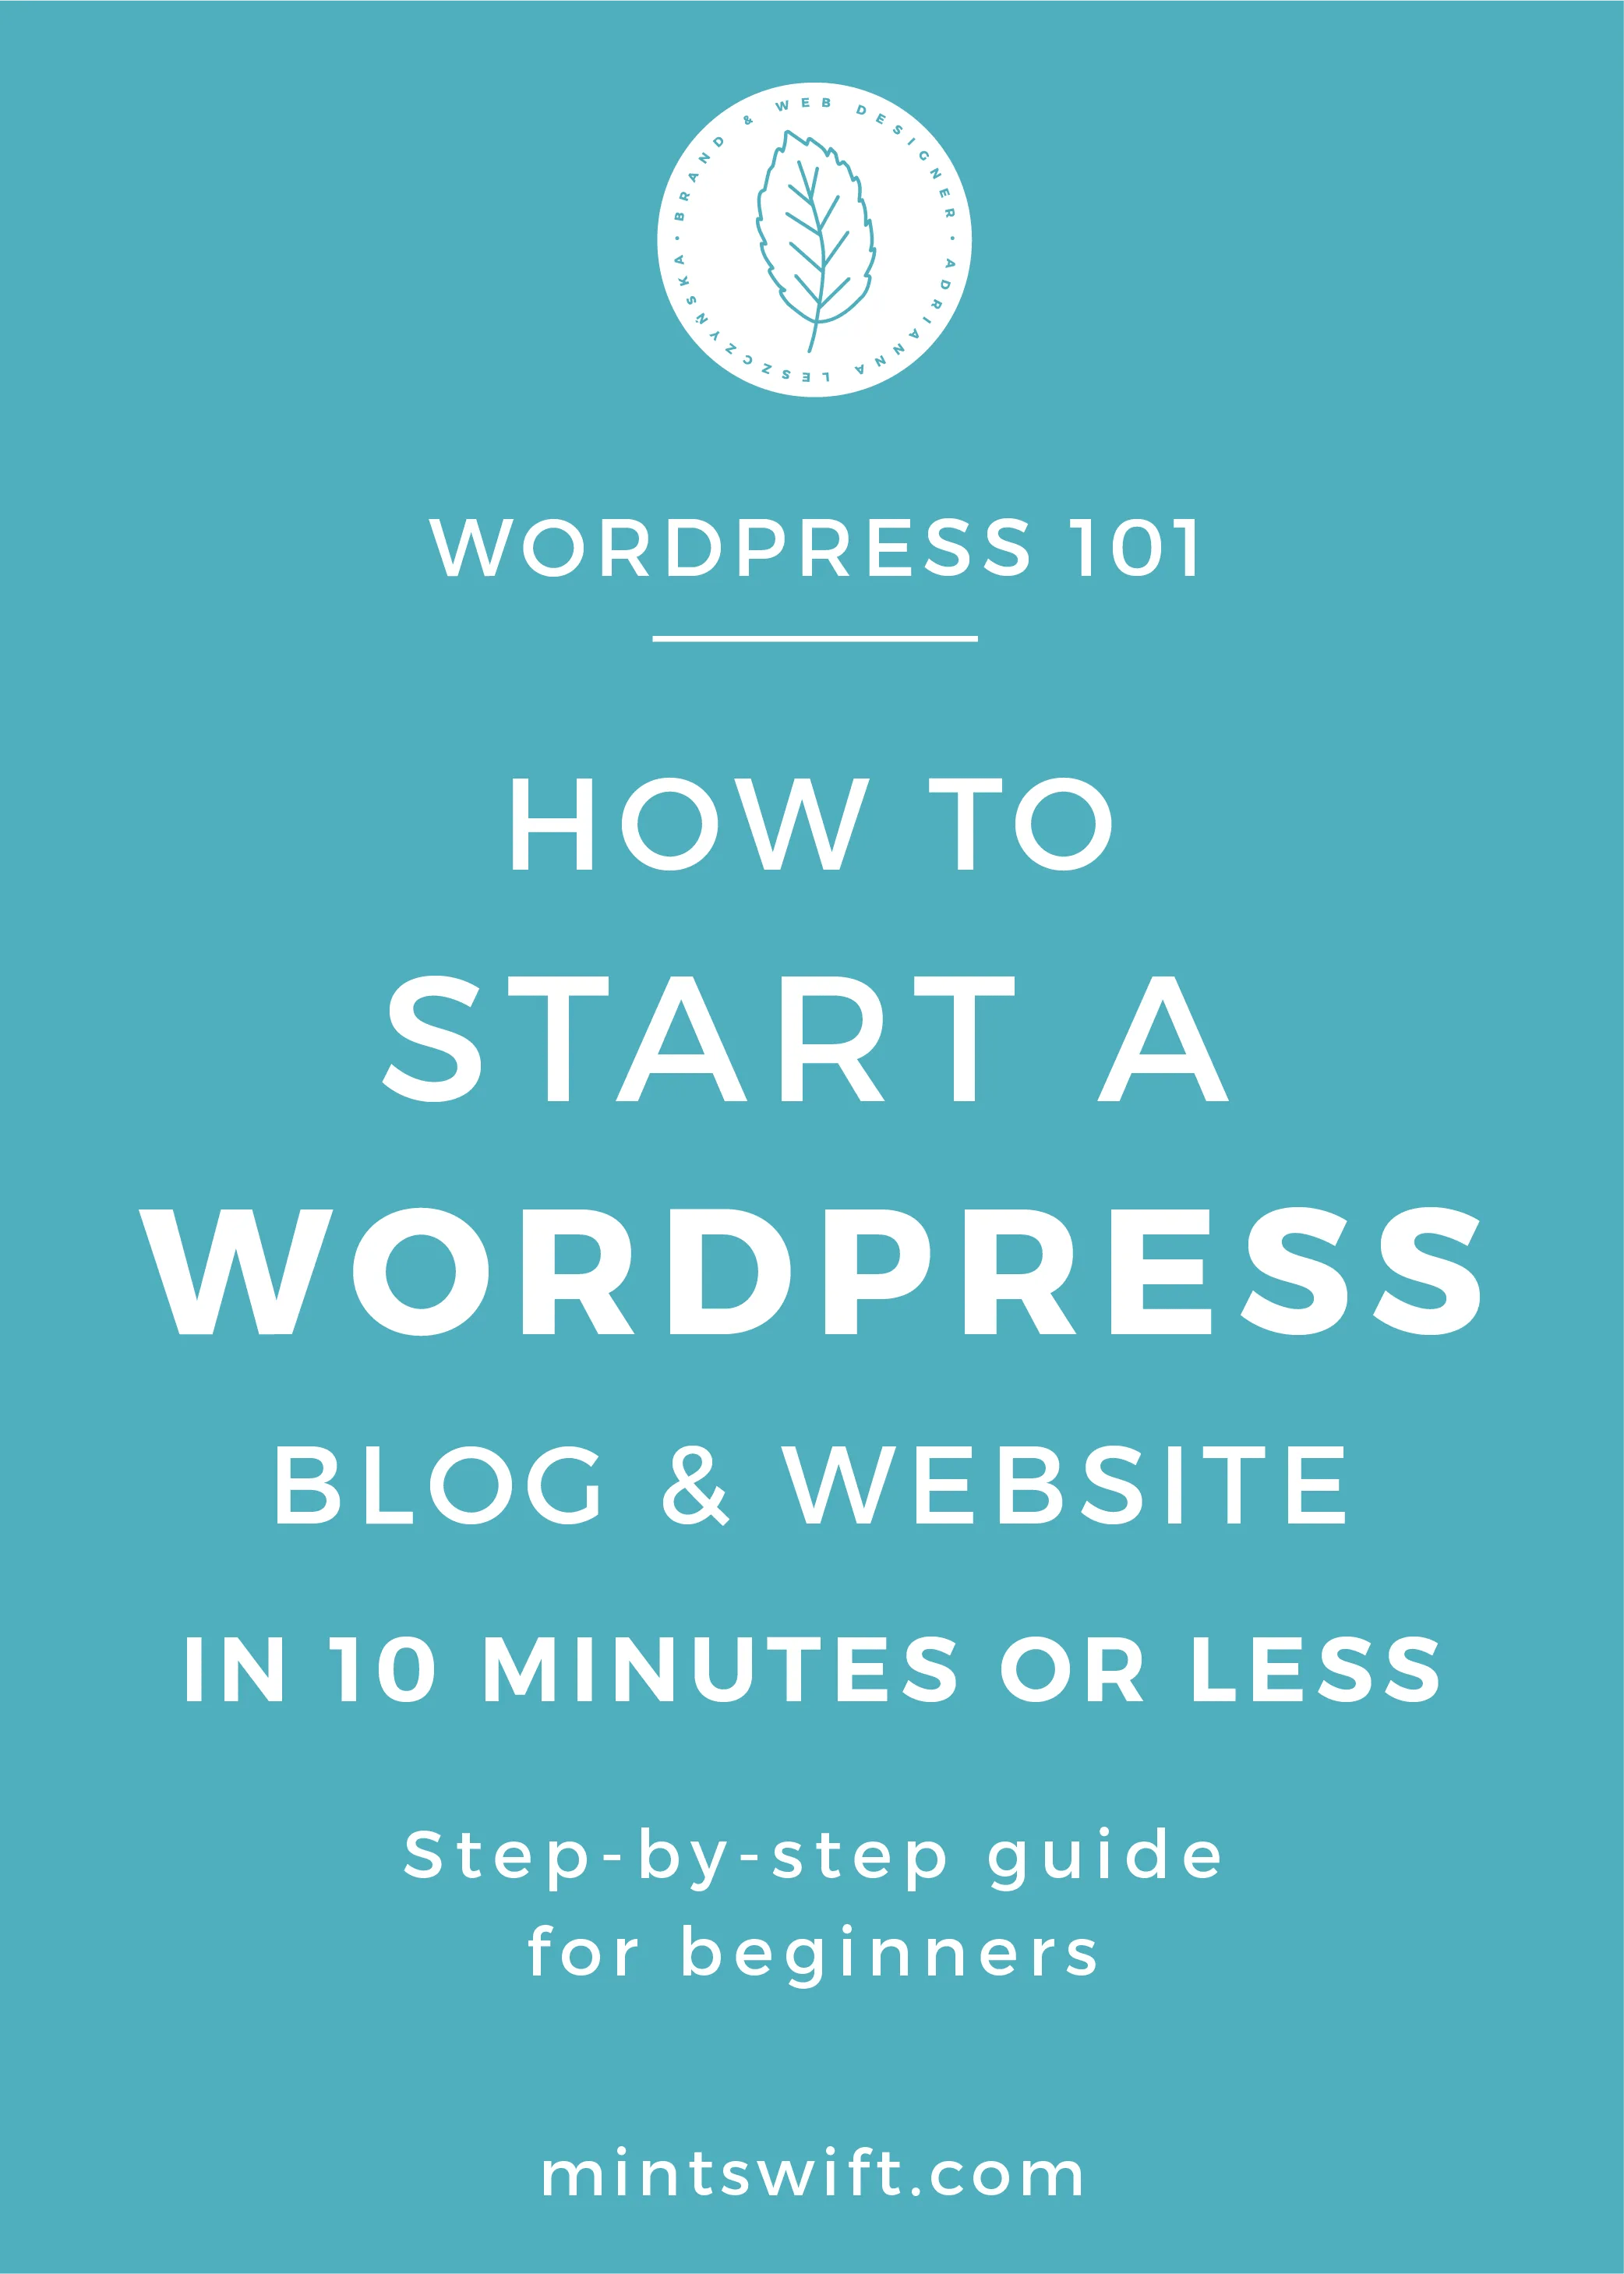 How to Start a WordPress Blog & Website in 10 Minutes or Less. Step-by-Step Guide for Beginners - MintSwift